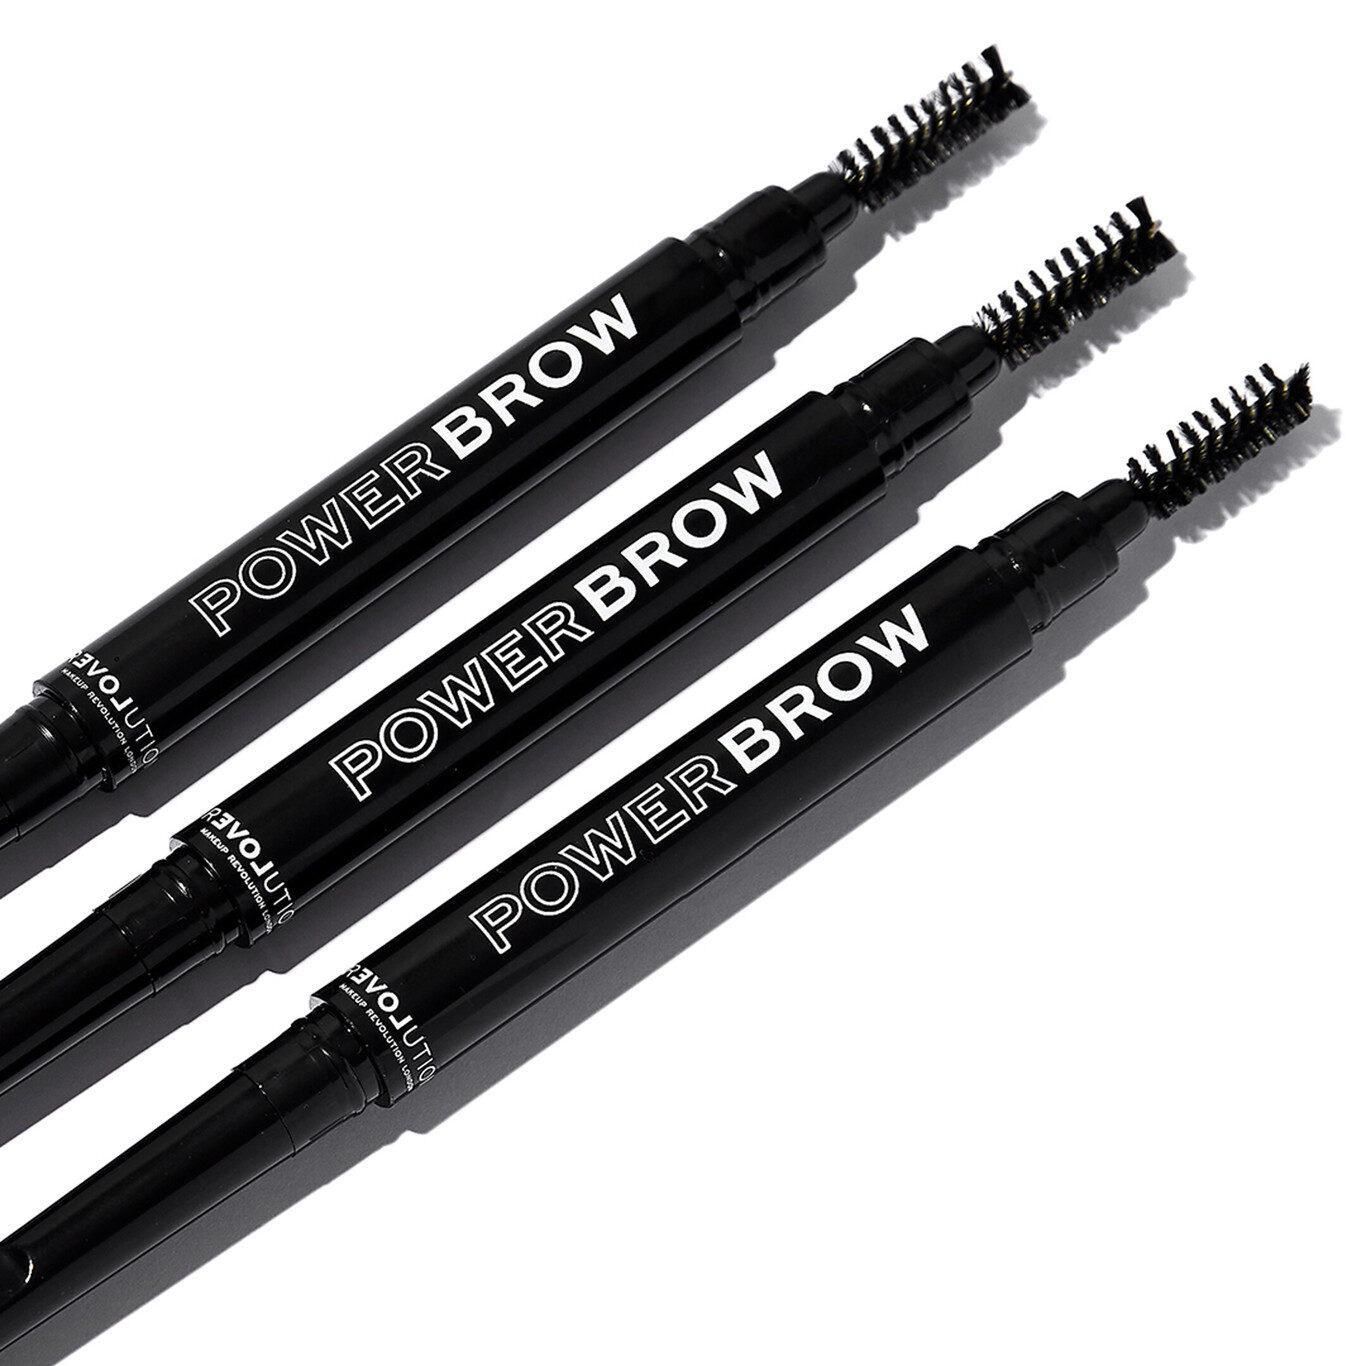 ReLove by Revolution Power Brow Pencil Promo